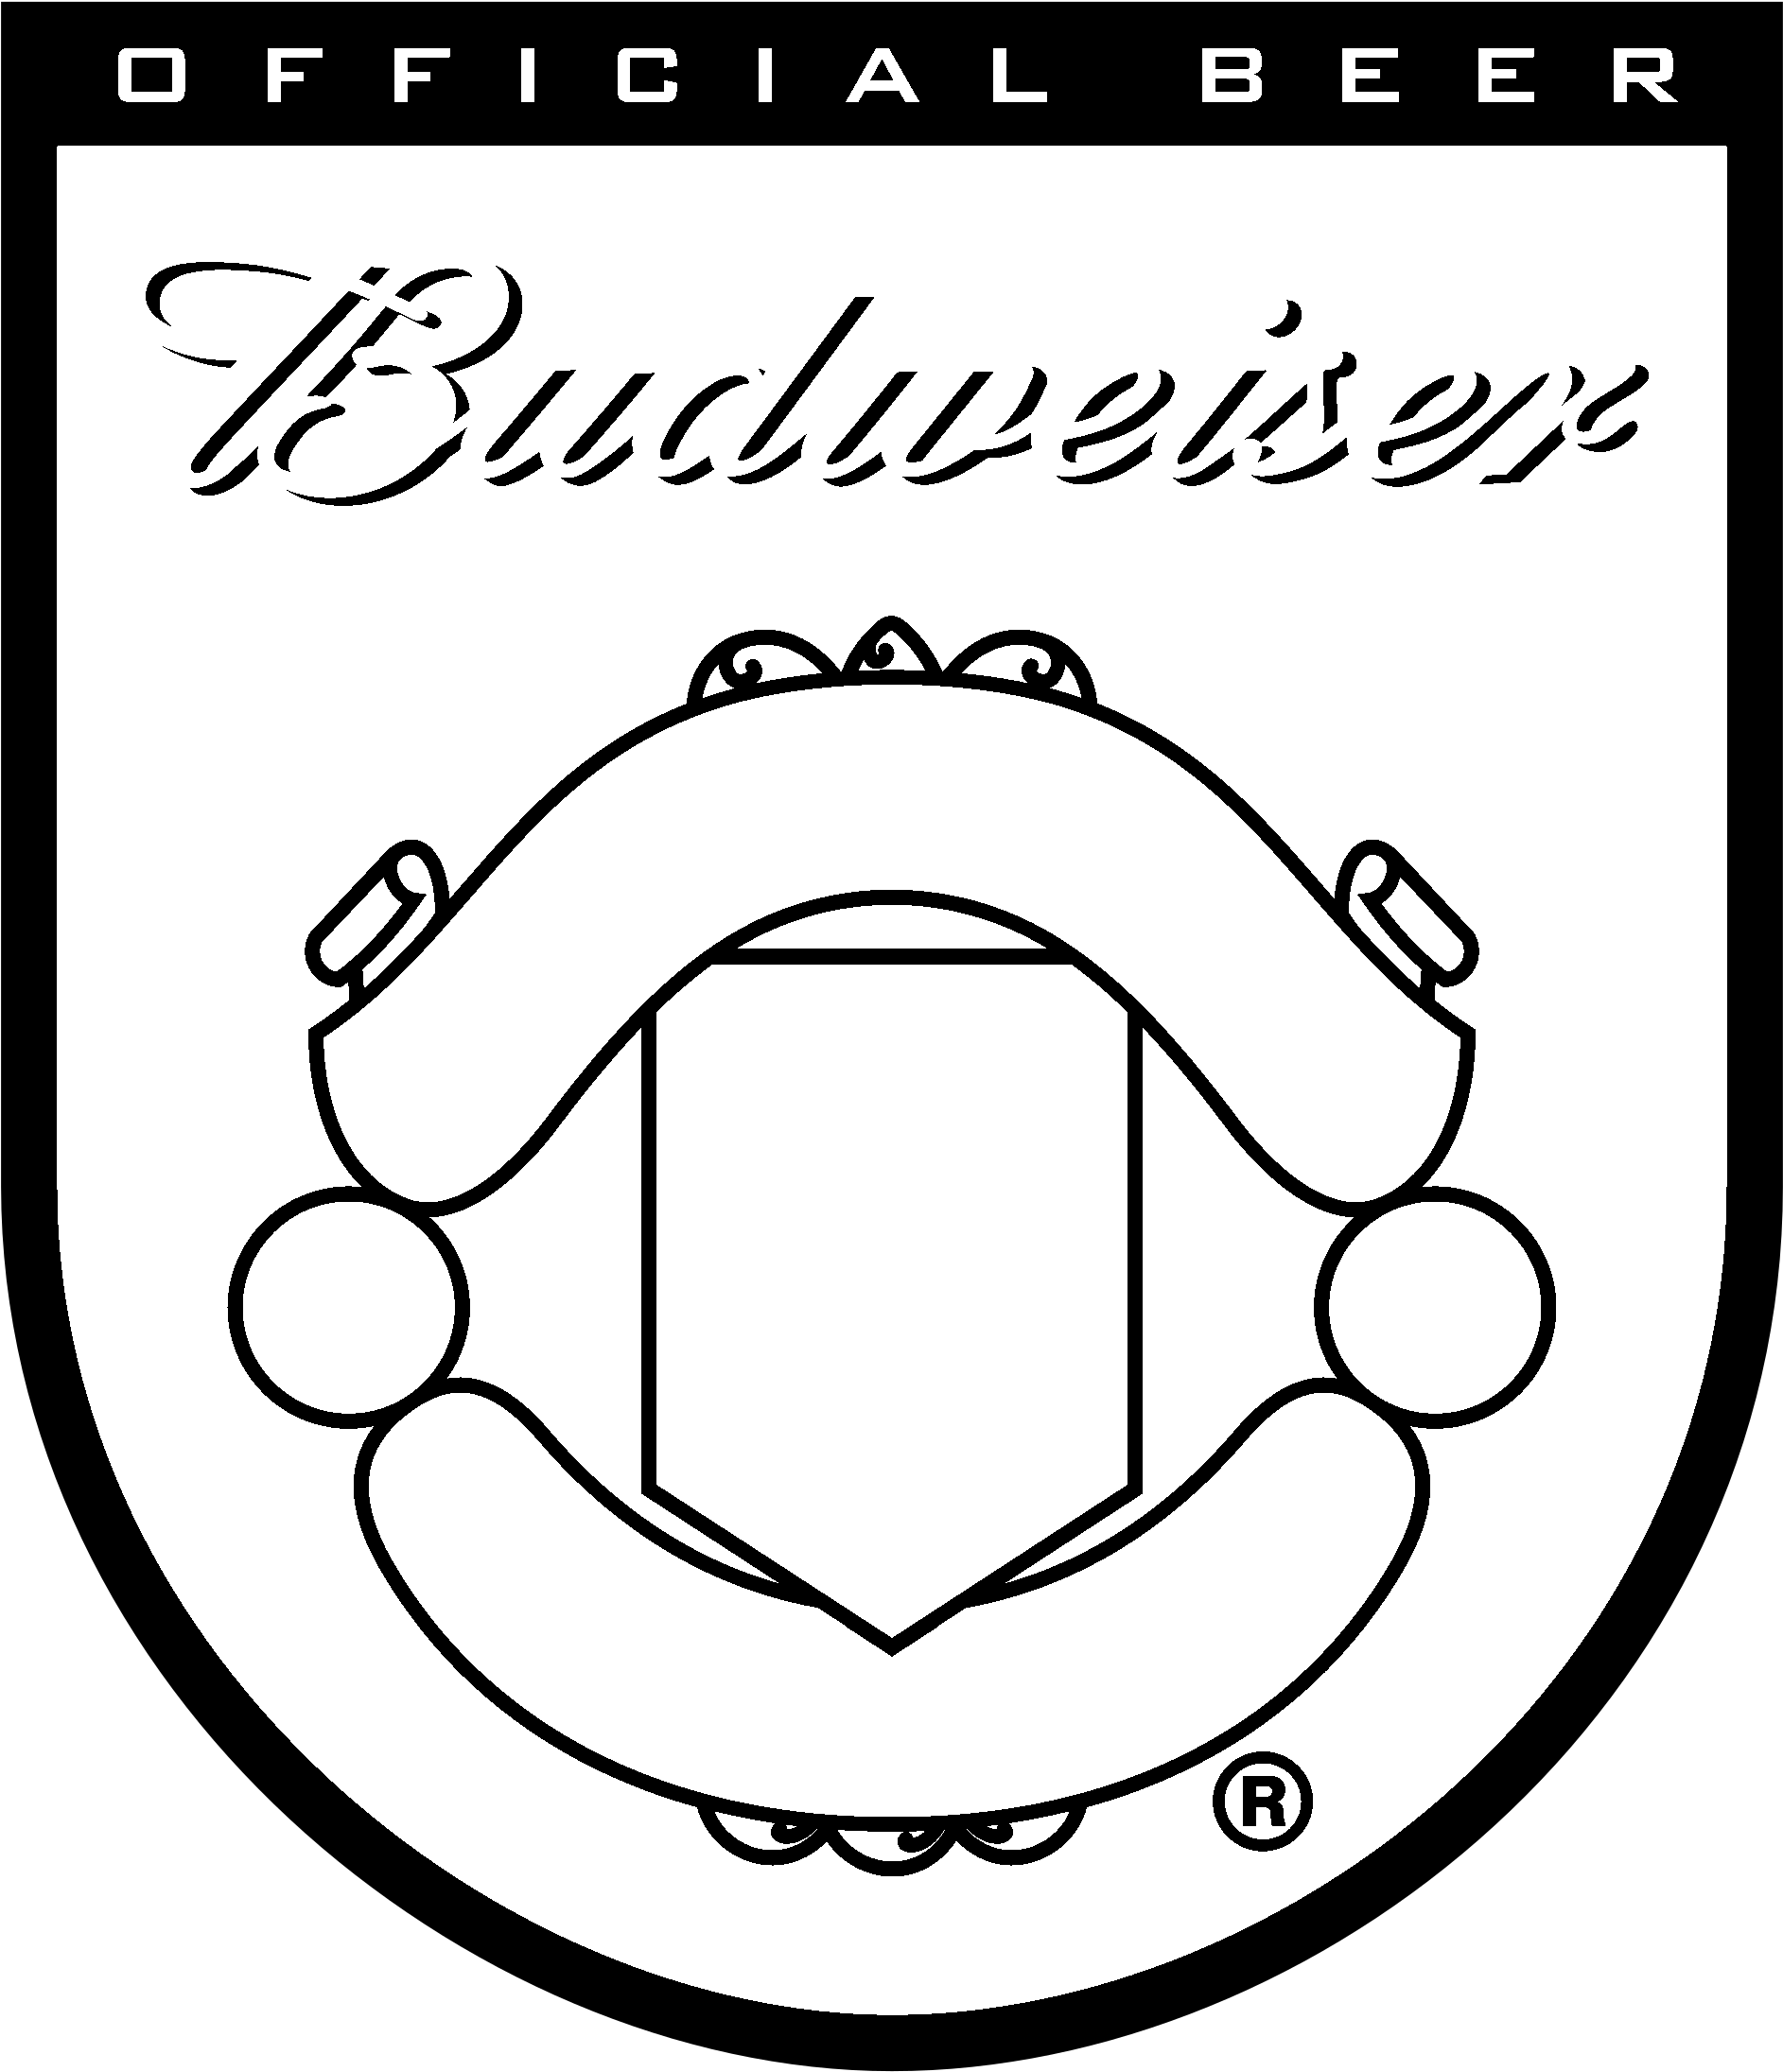 download hd budweiser manchester united logo black and white manchester united transparent png image nicepng com nicepng